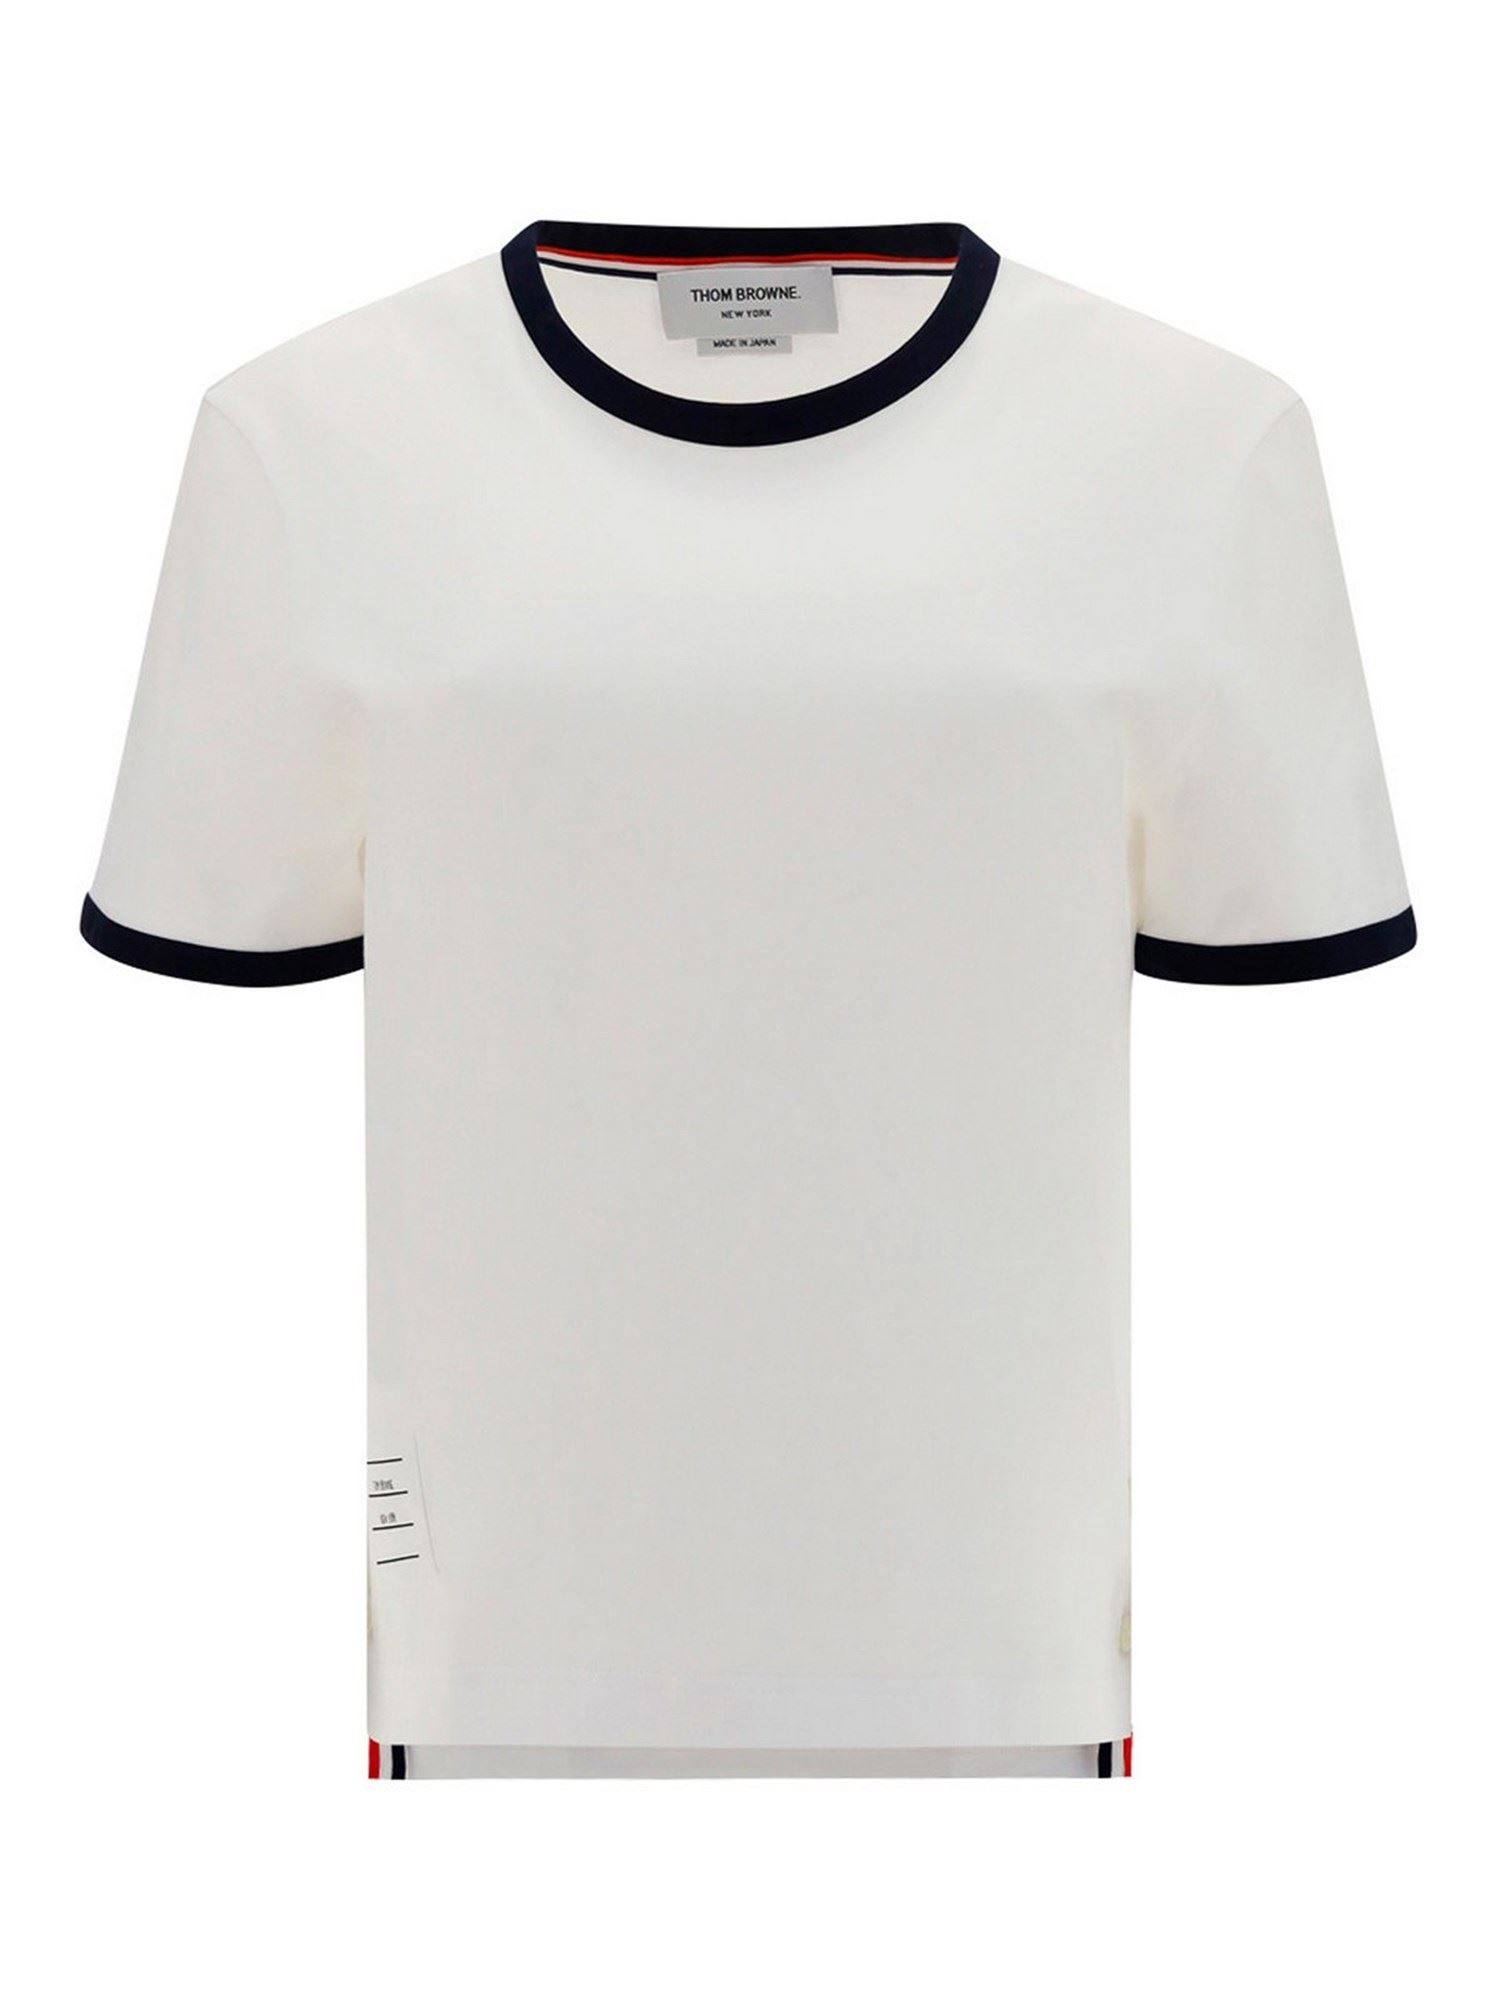 Thom Browne COTTON T-SHIRT IN WHITE